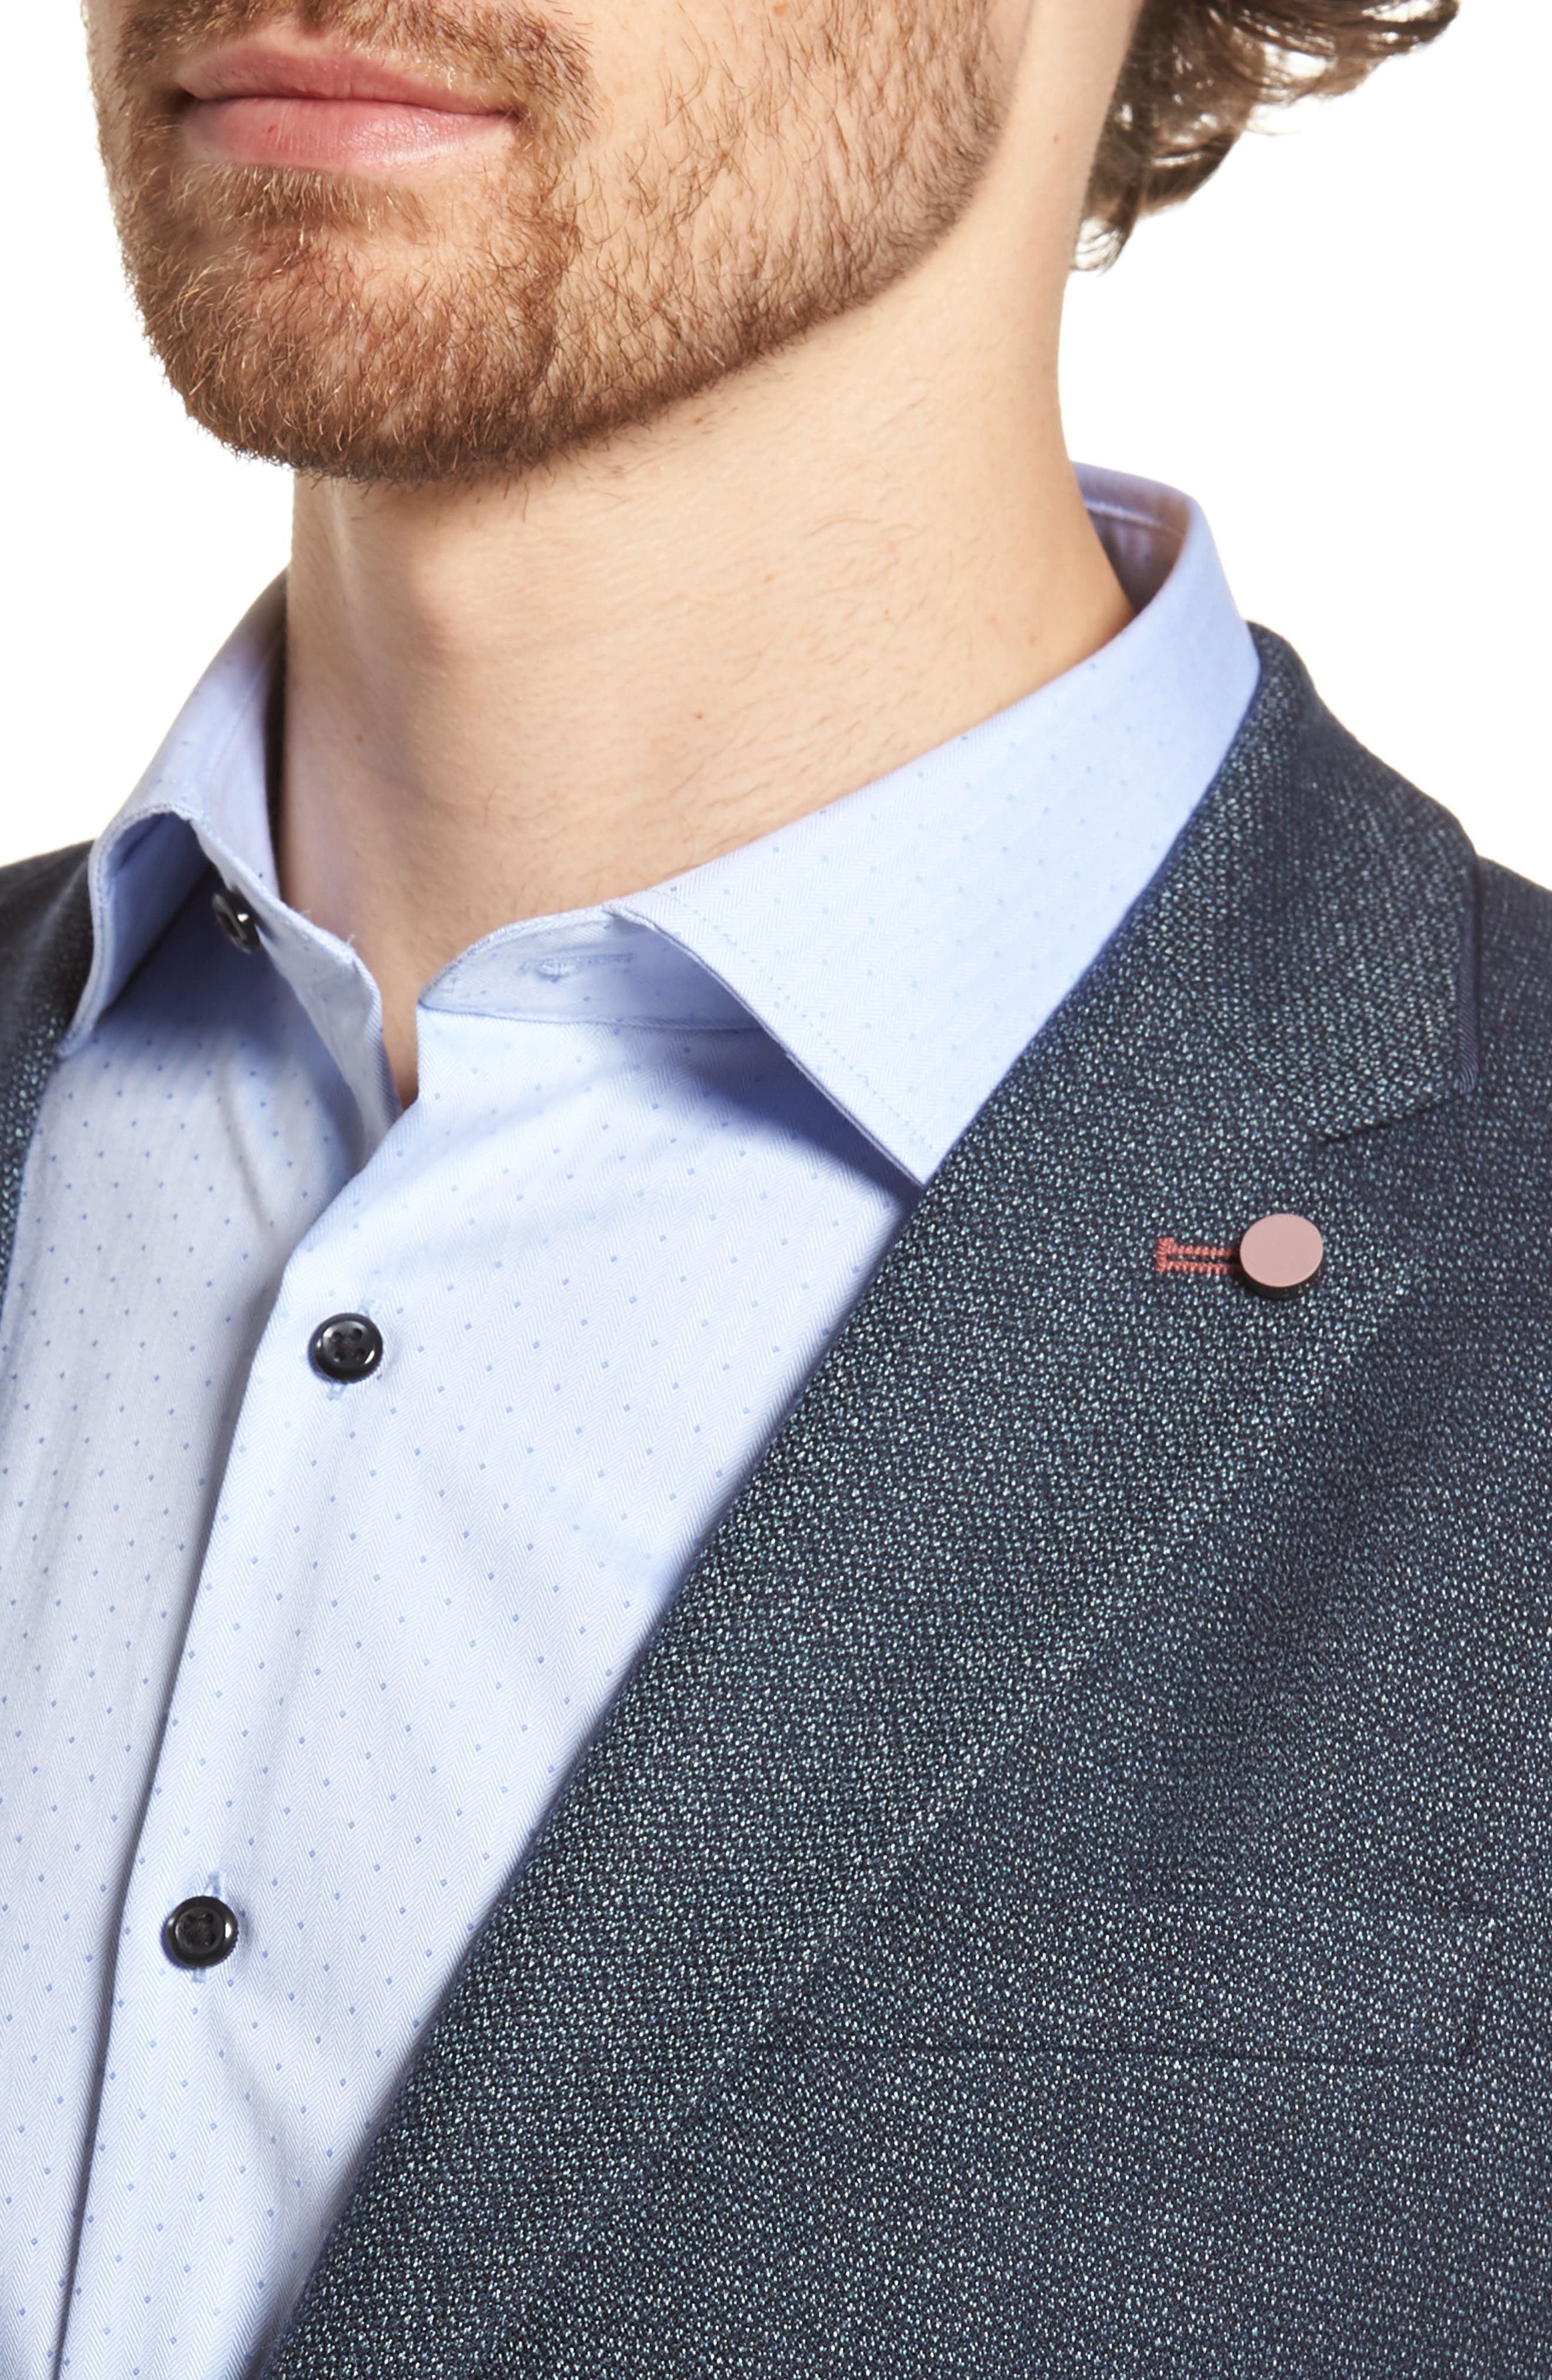 Burkett Trim Fit Blazer,                             Alternate thumbnail 4, color,